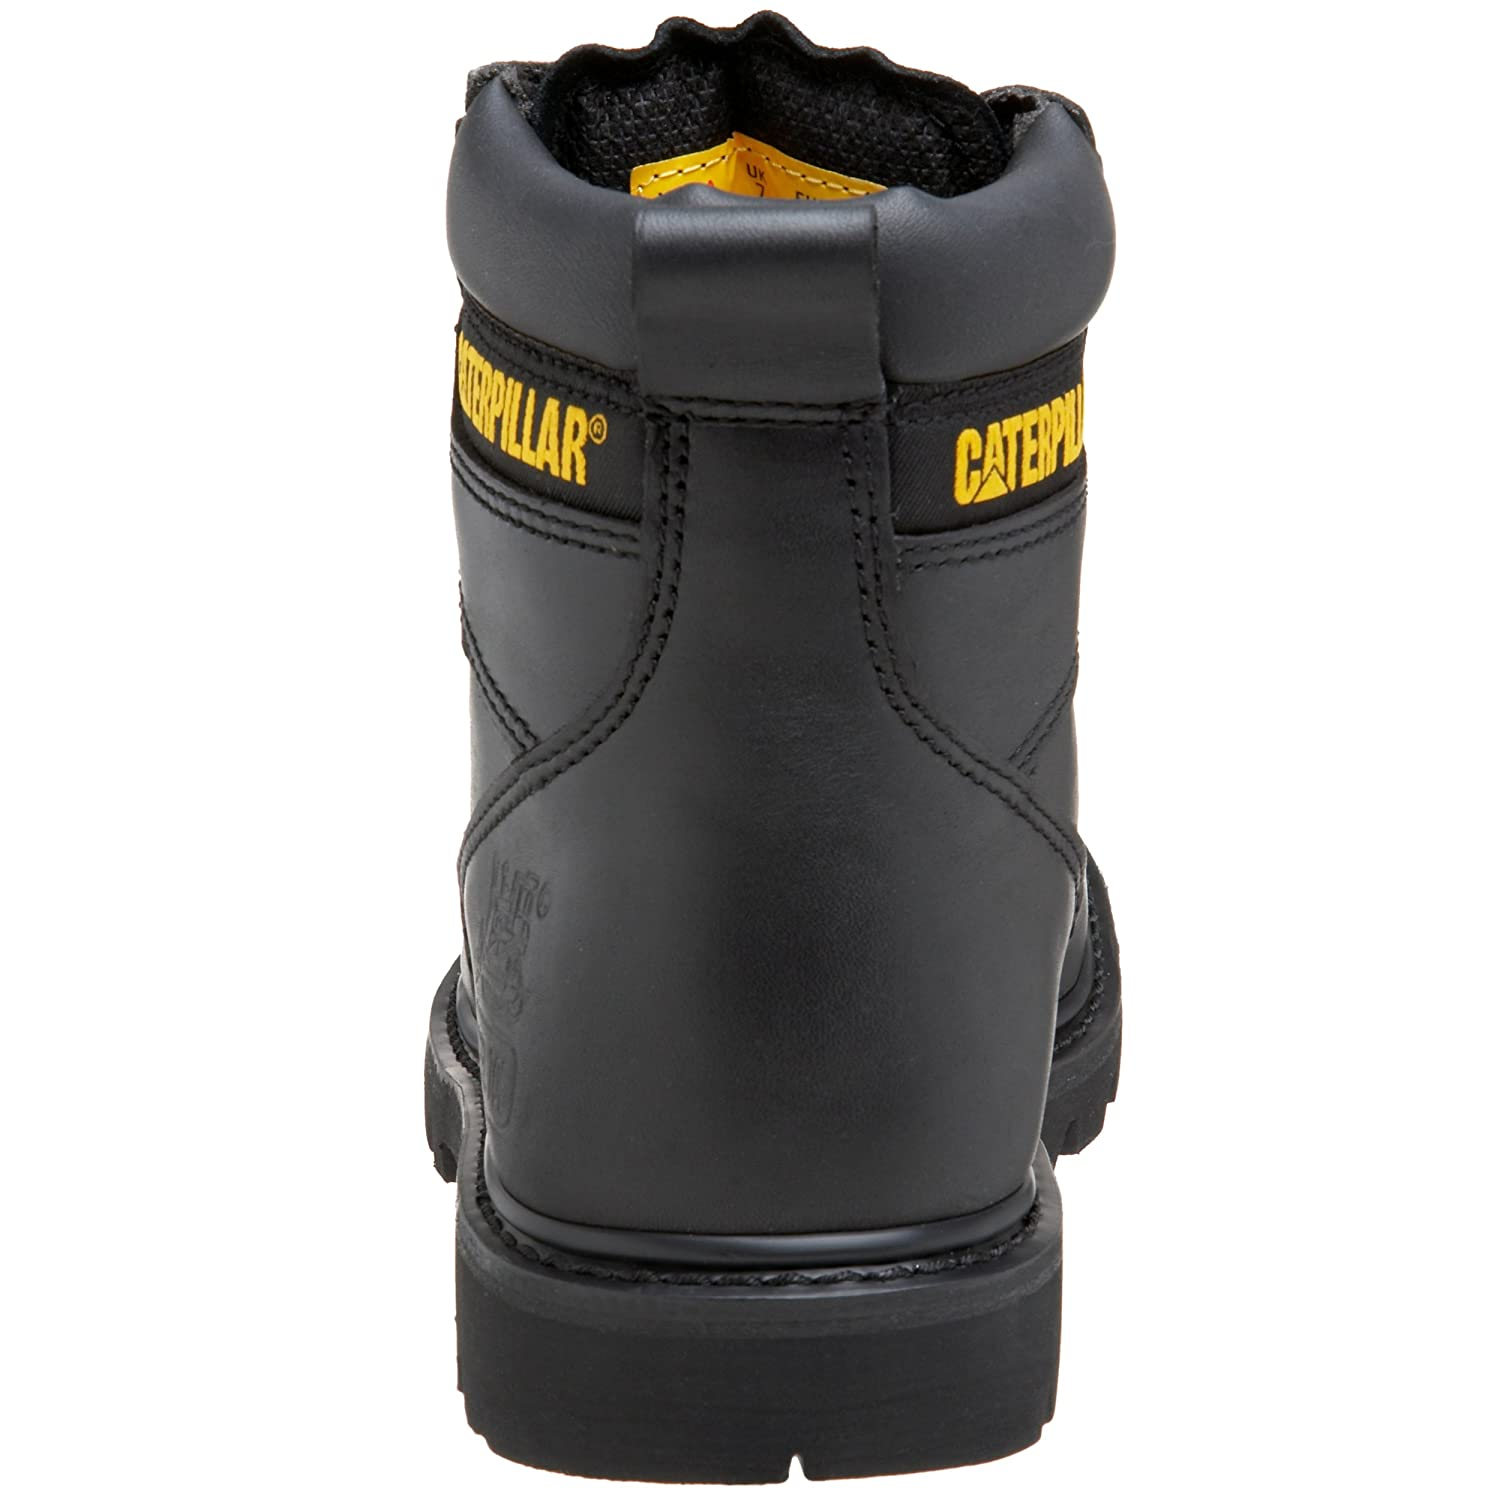 Uncategorized Boots Kitchen Appliances Free Delivery amazon com caterpillar mens 2nd shift 6 steel toe boot boots